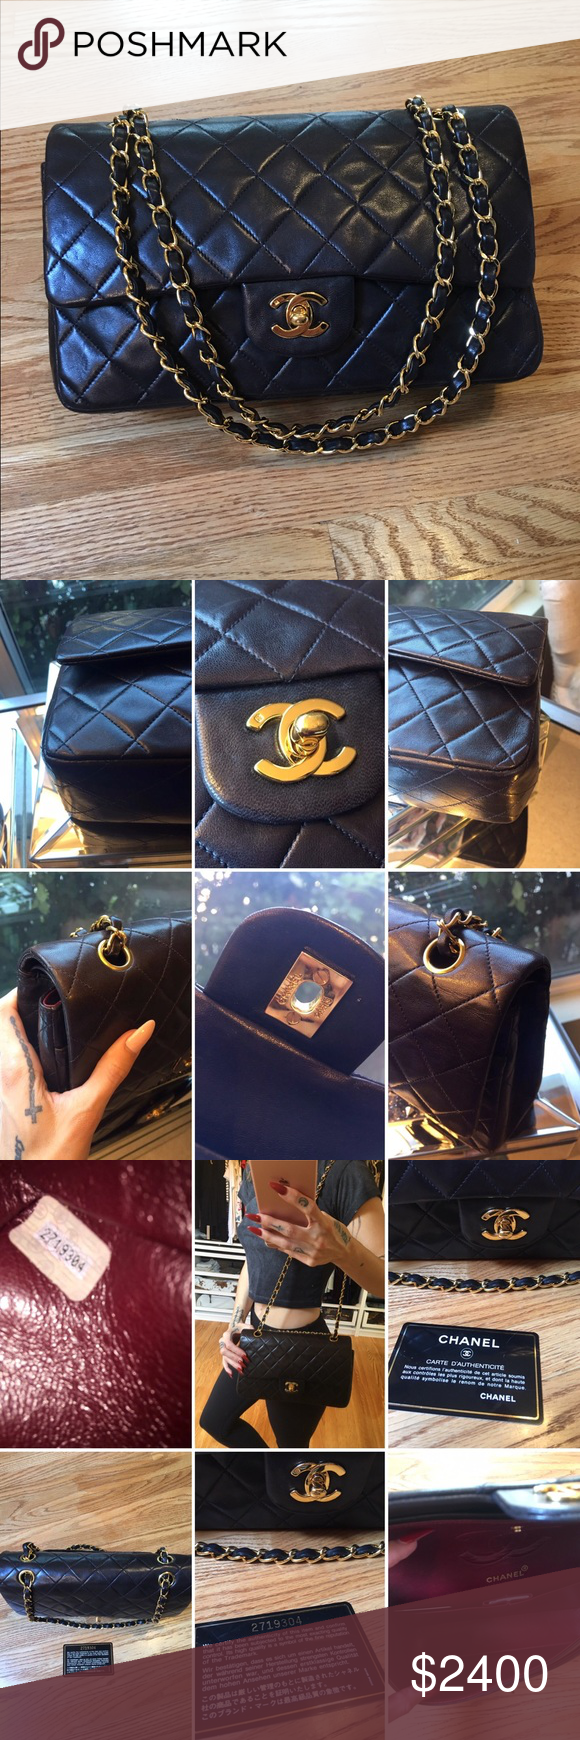 f14b48aeb8bf Chanel Classic MED 2.55 Double Flap Bag! VINTAGE CHANEL 10